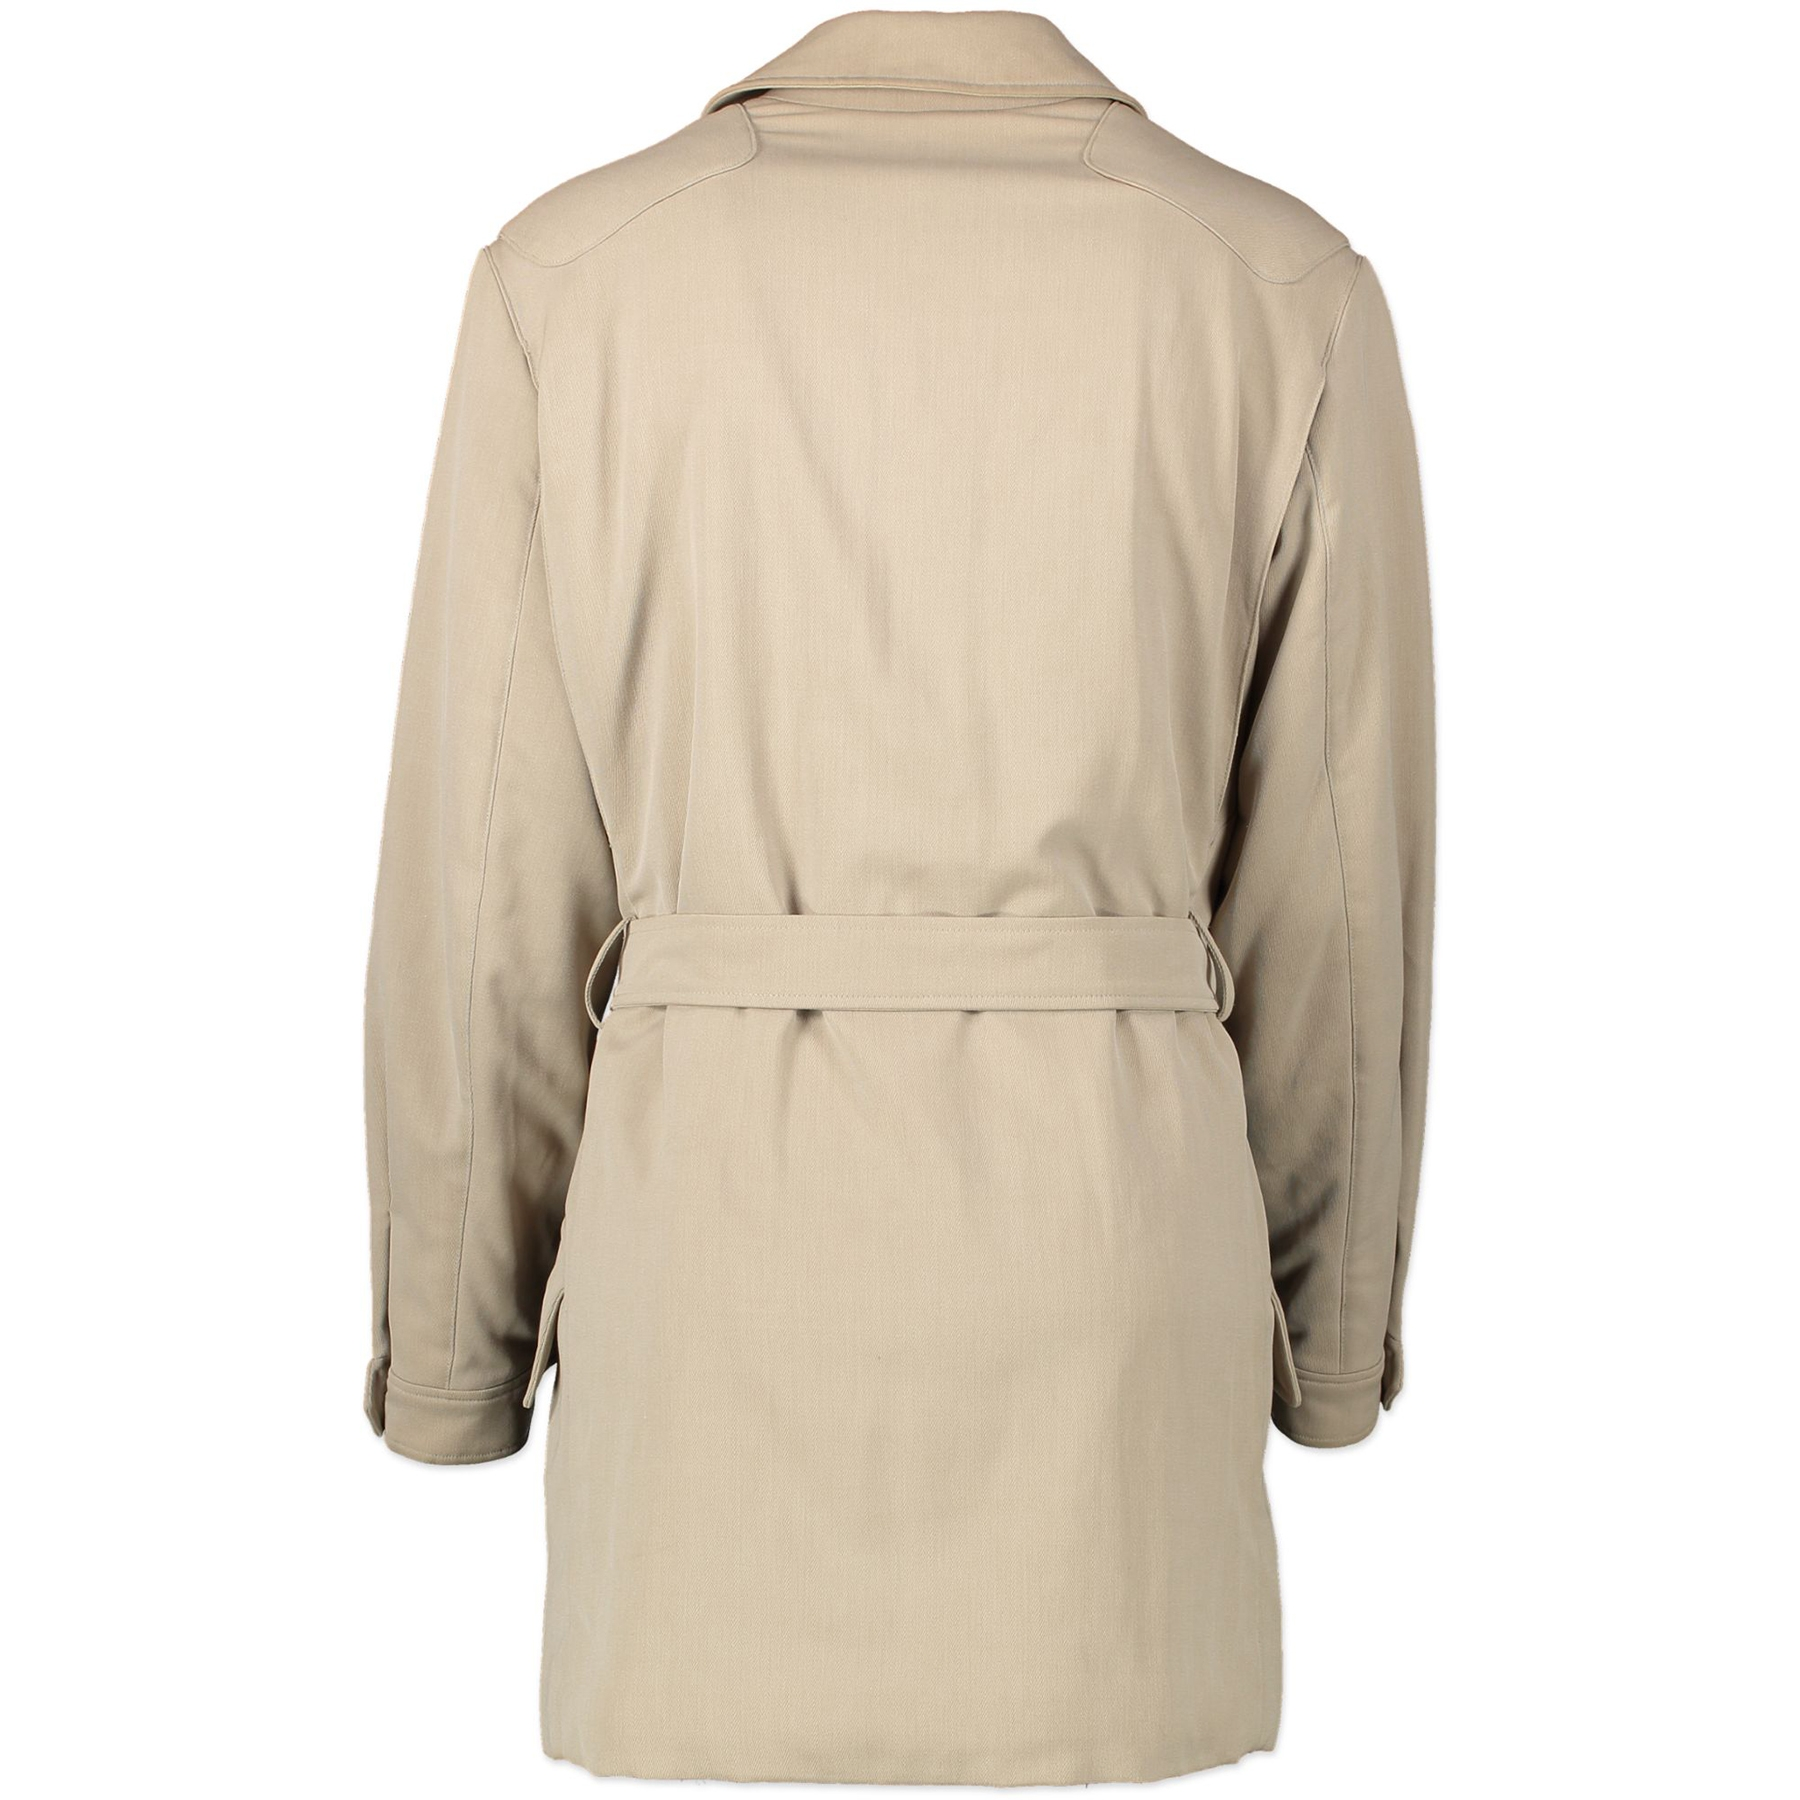 Buy authentic secondhand Hermes coats at the right price at LabelLOV vintage webshop. Safe and secure online shopping.